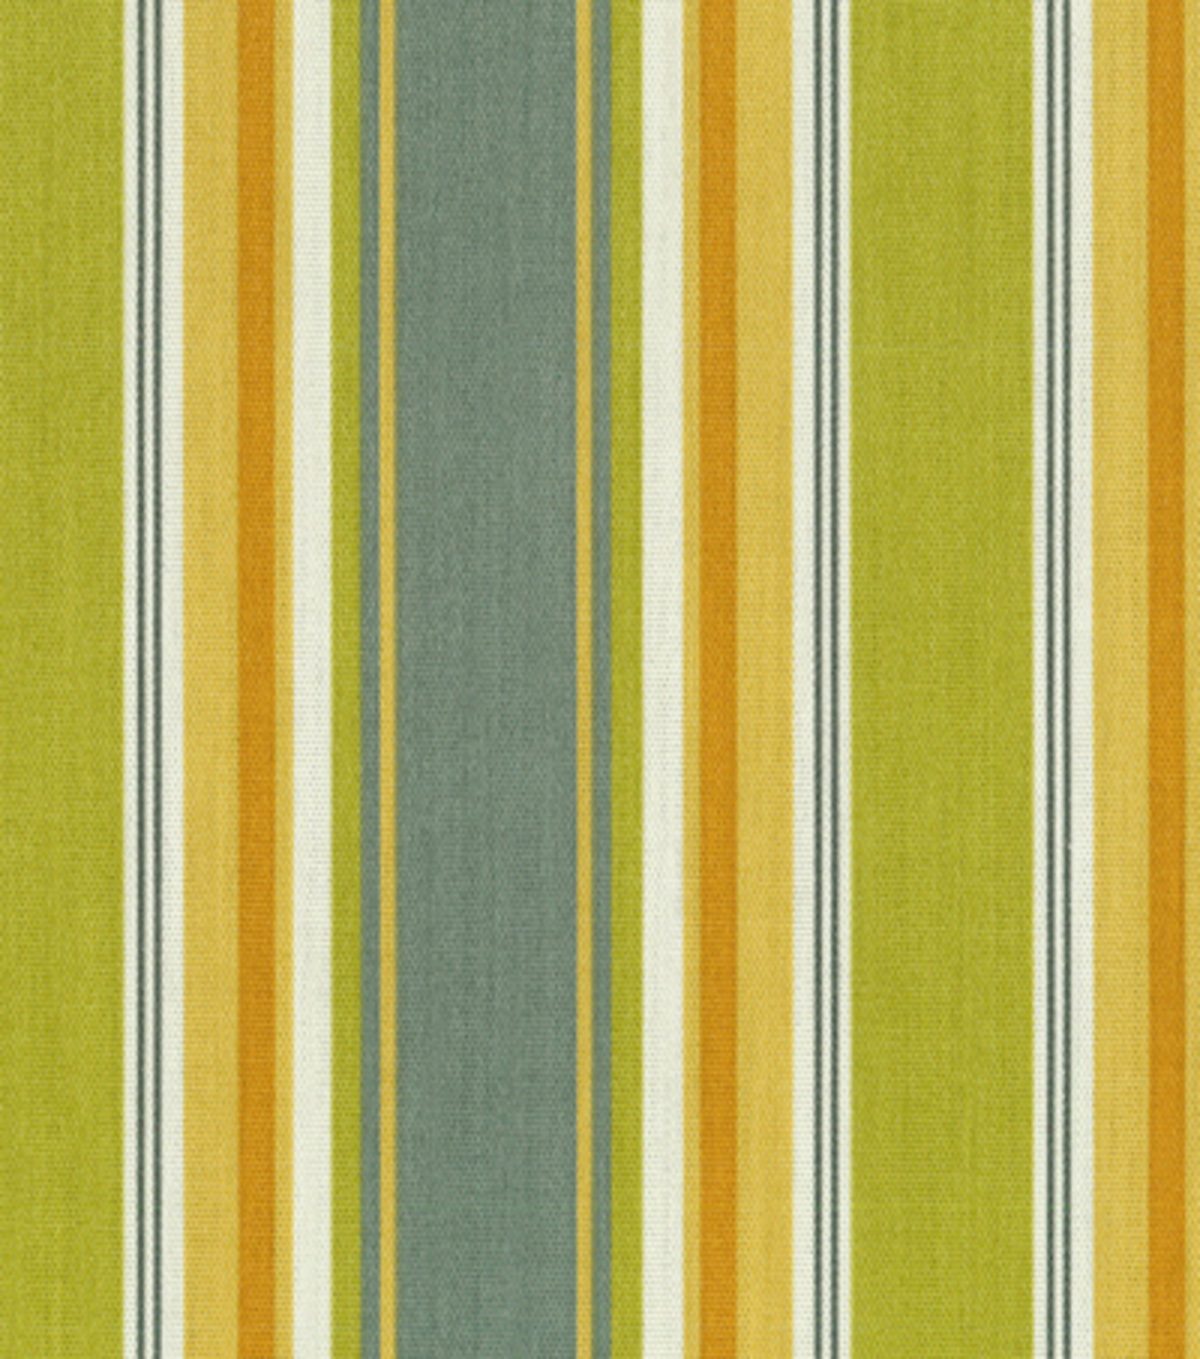 Home Decor 8\u0022x8\u0022 Fabric Swatch-Solarium Tuscabella Graphite